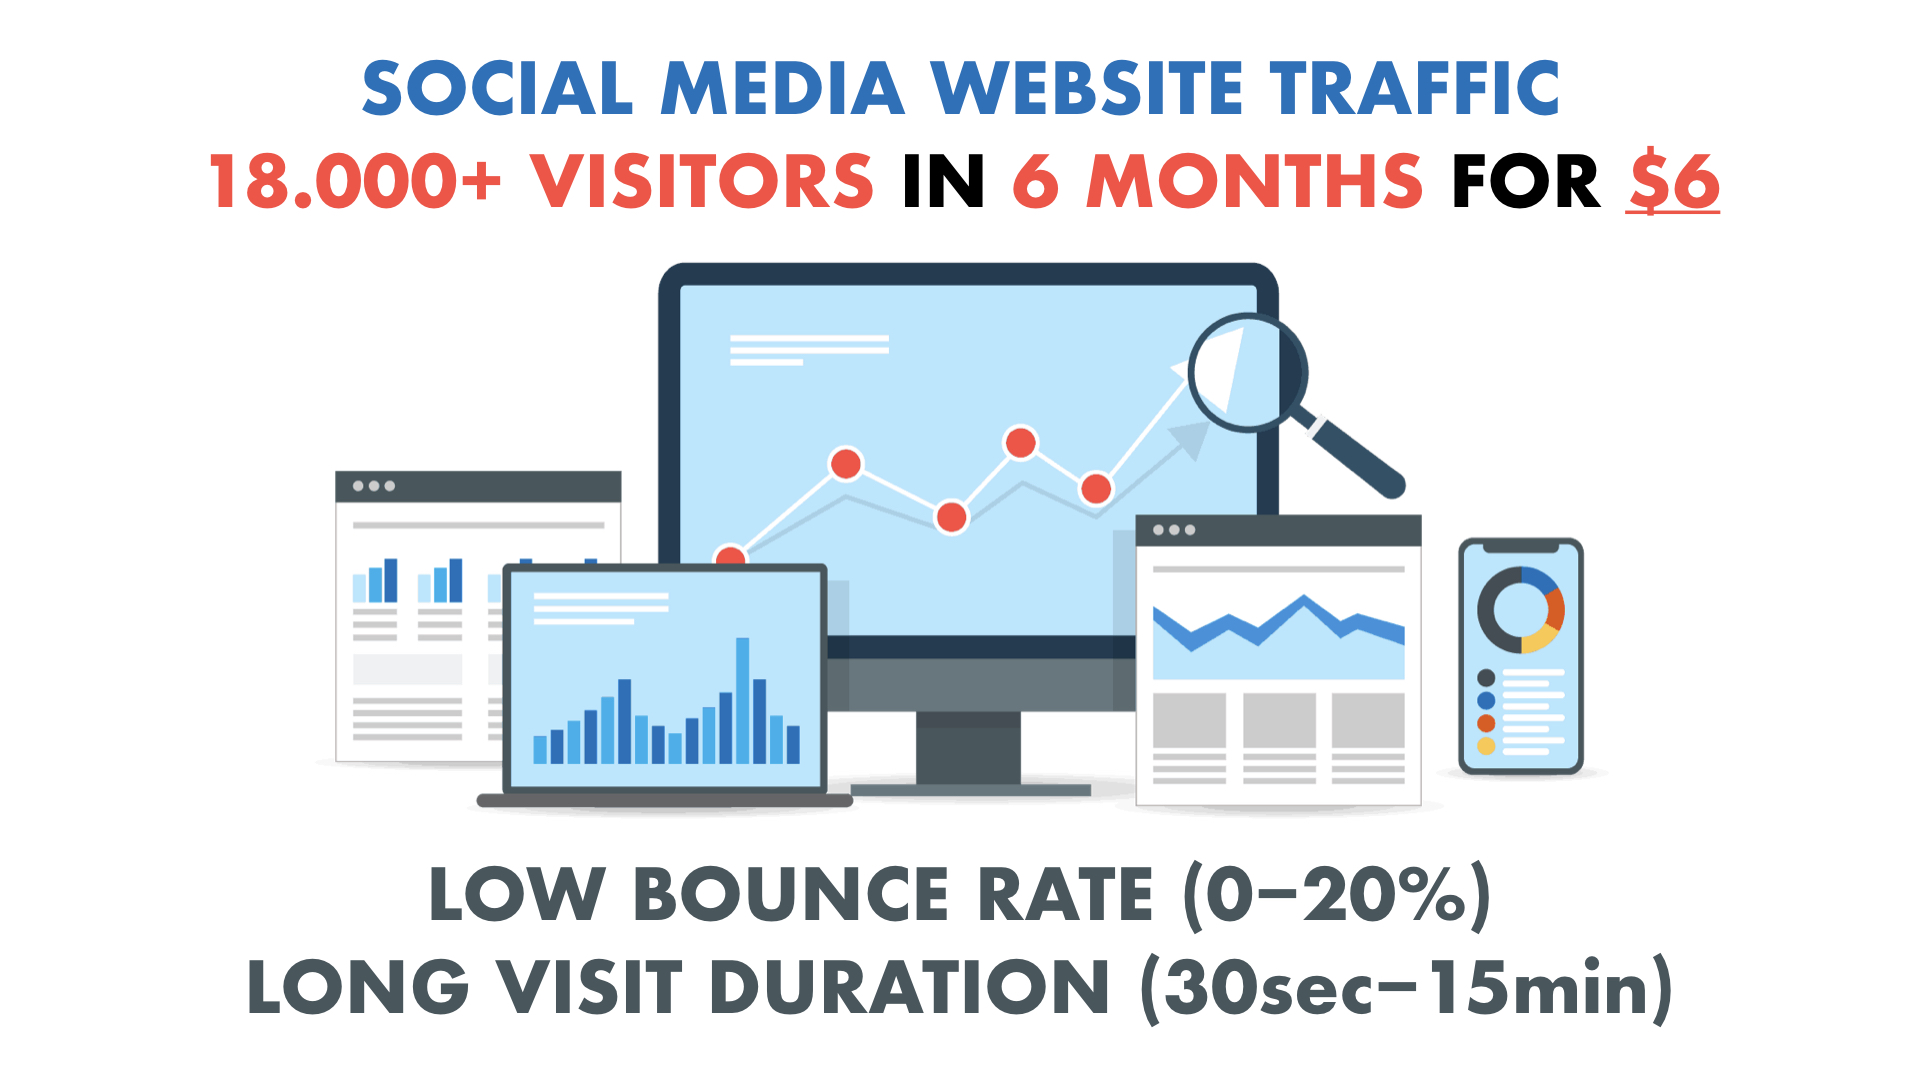 SOCIAL MEDIA Website Traffic with Low Bounce Rate and Long Visit Duration for 6 months